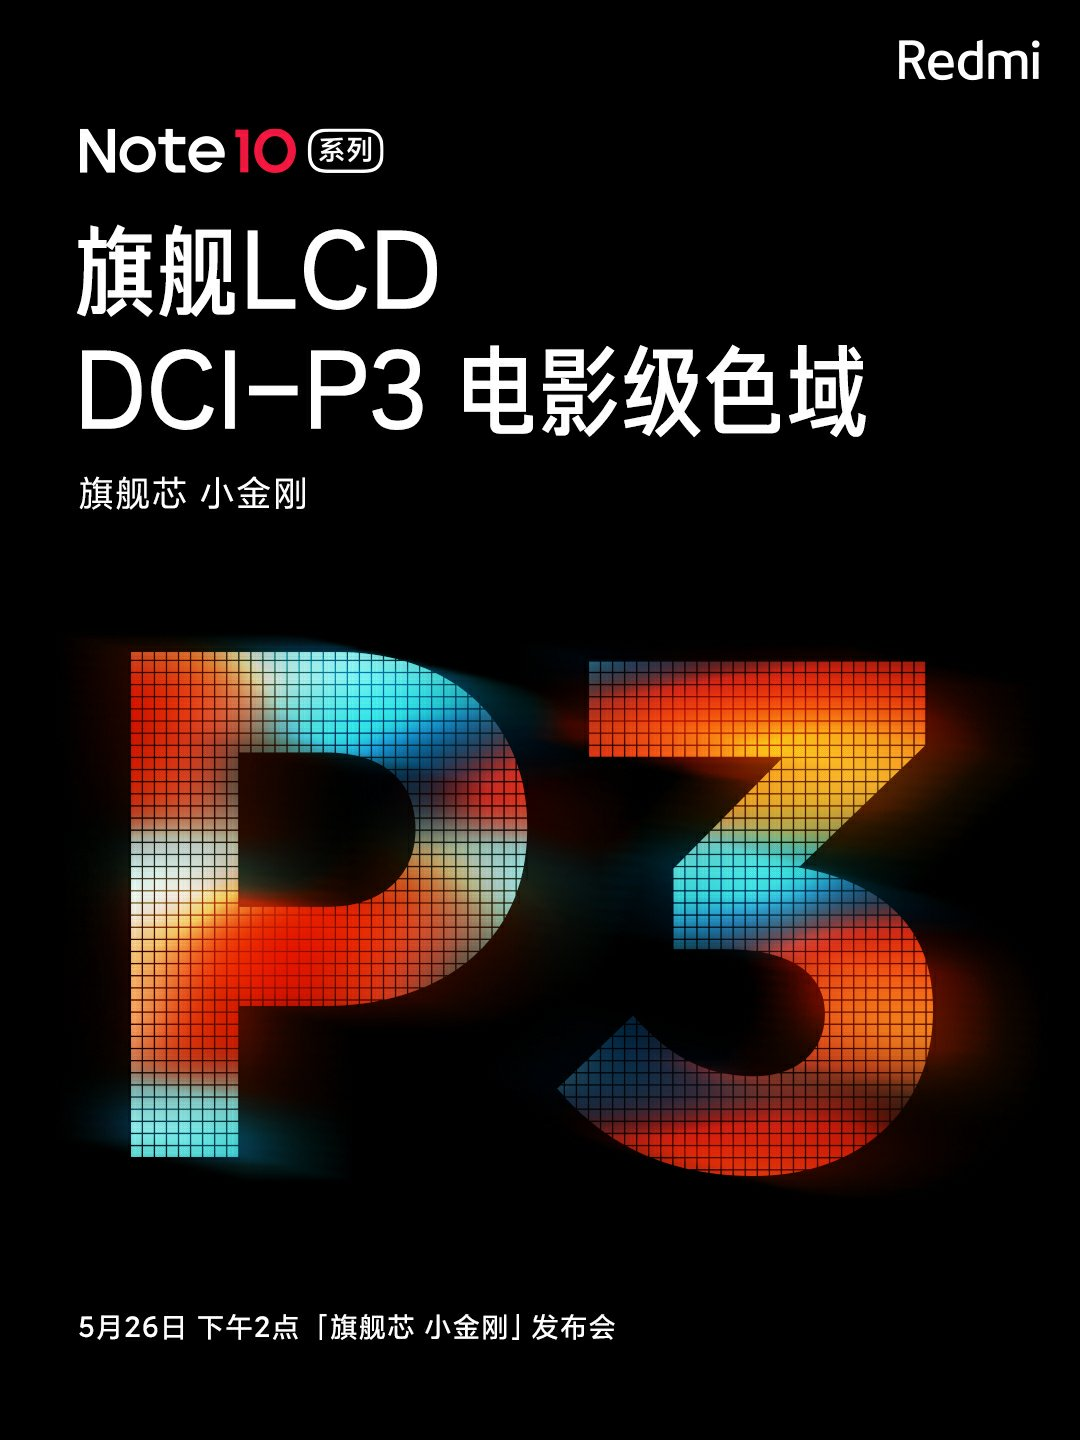 Redmi Note10 Series Display Features DCI-P3